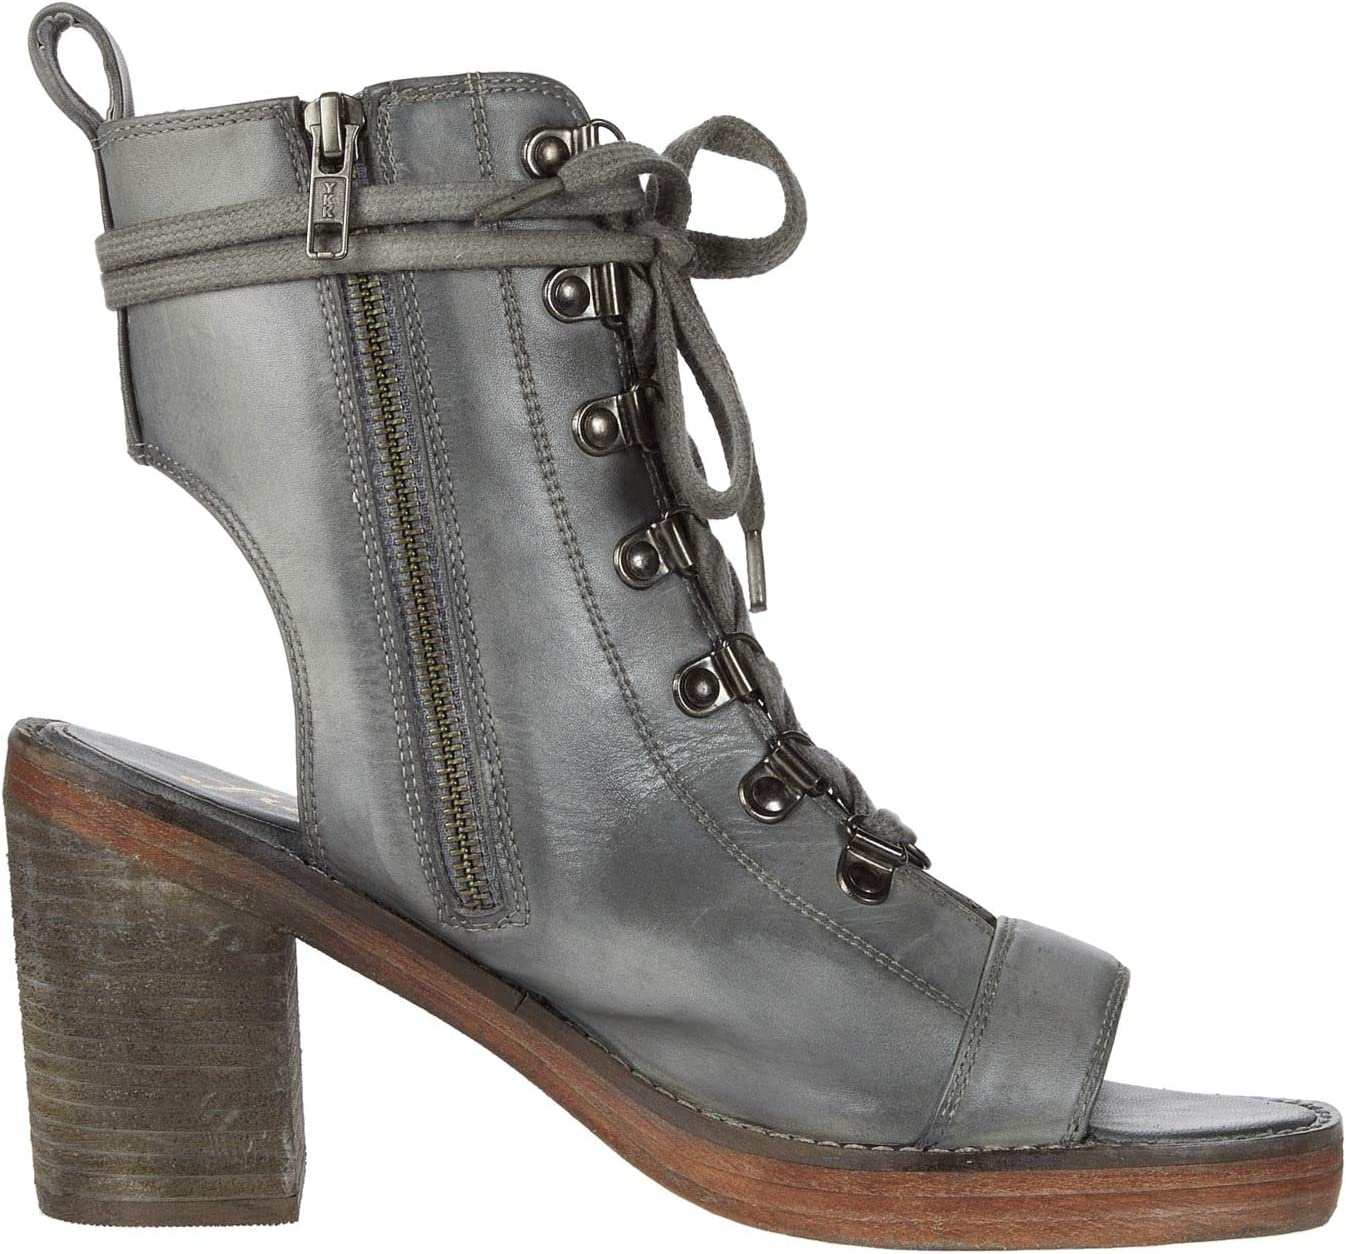 Free People City Of Lights Heel | Women's shoes | 2020 Newest